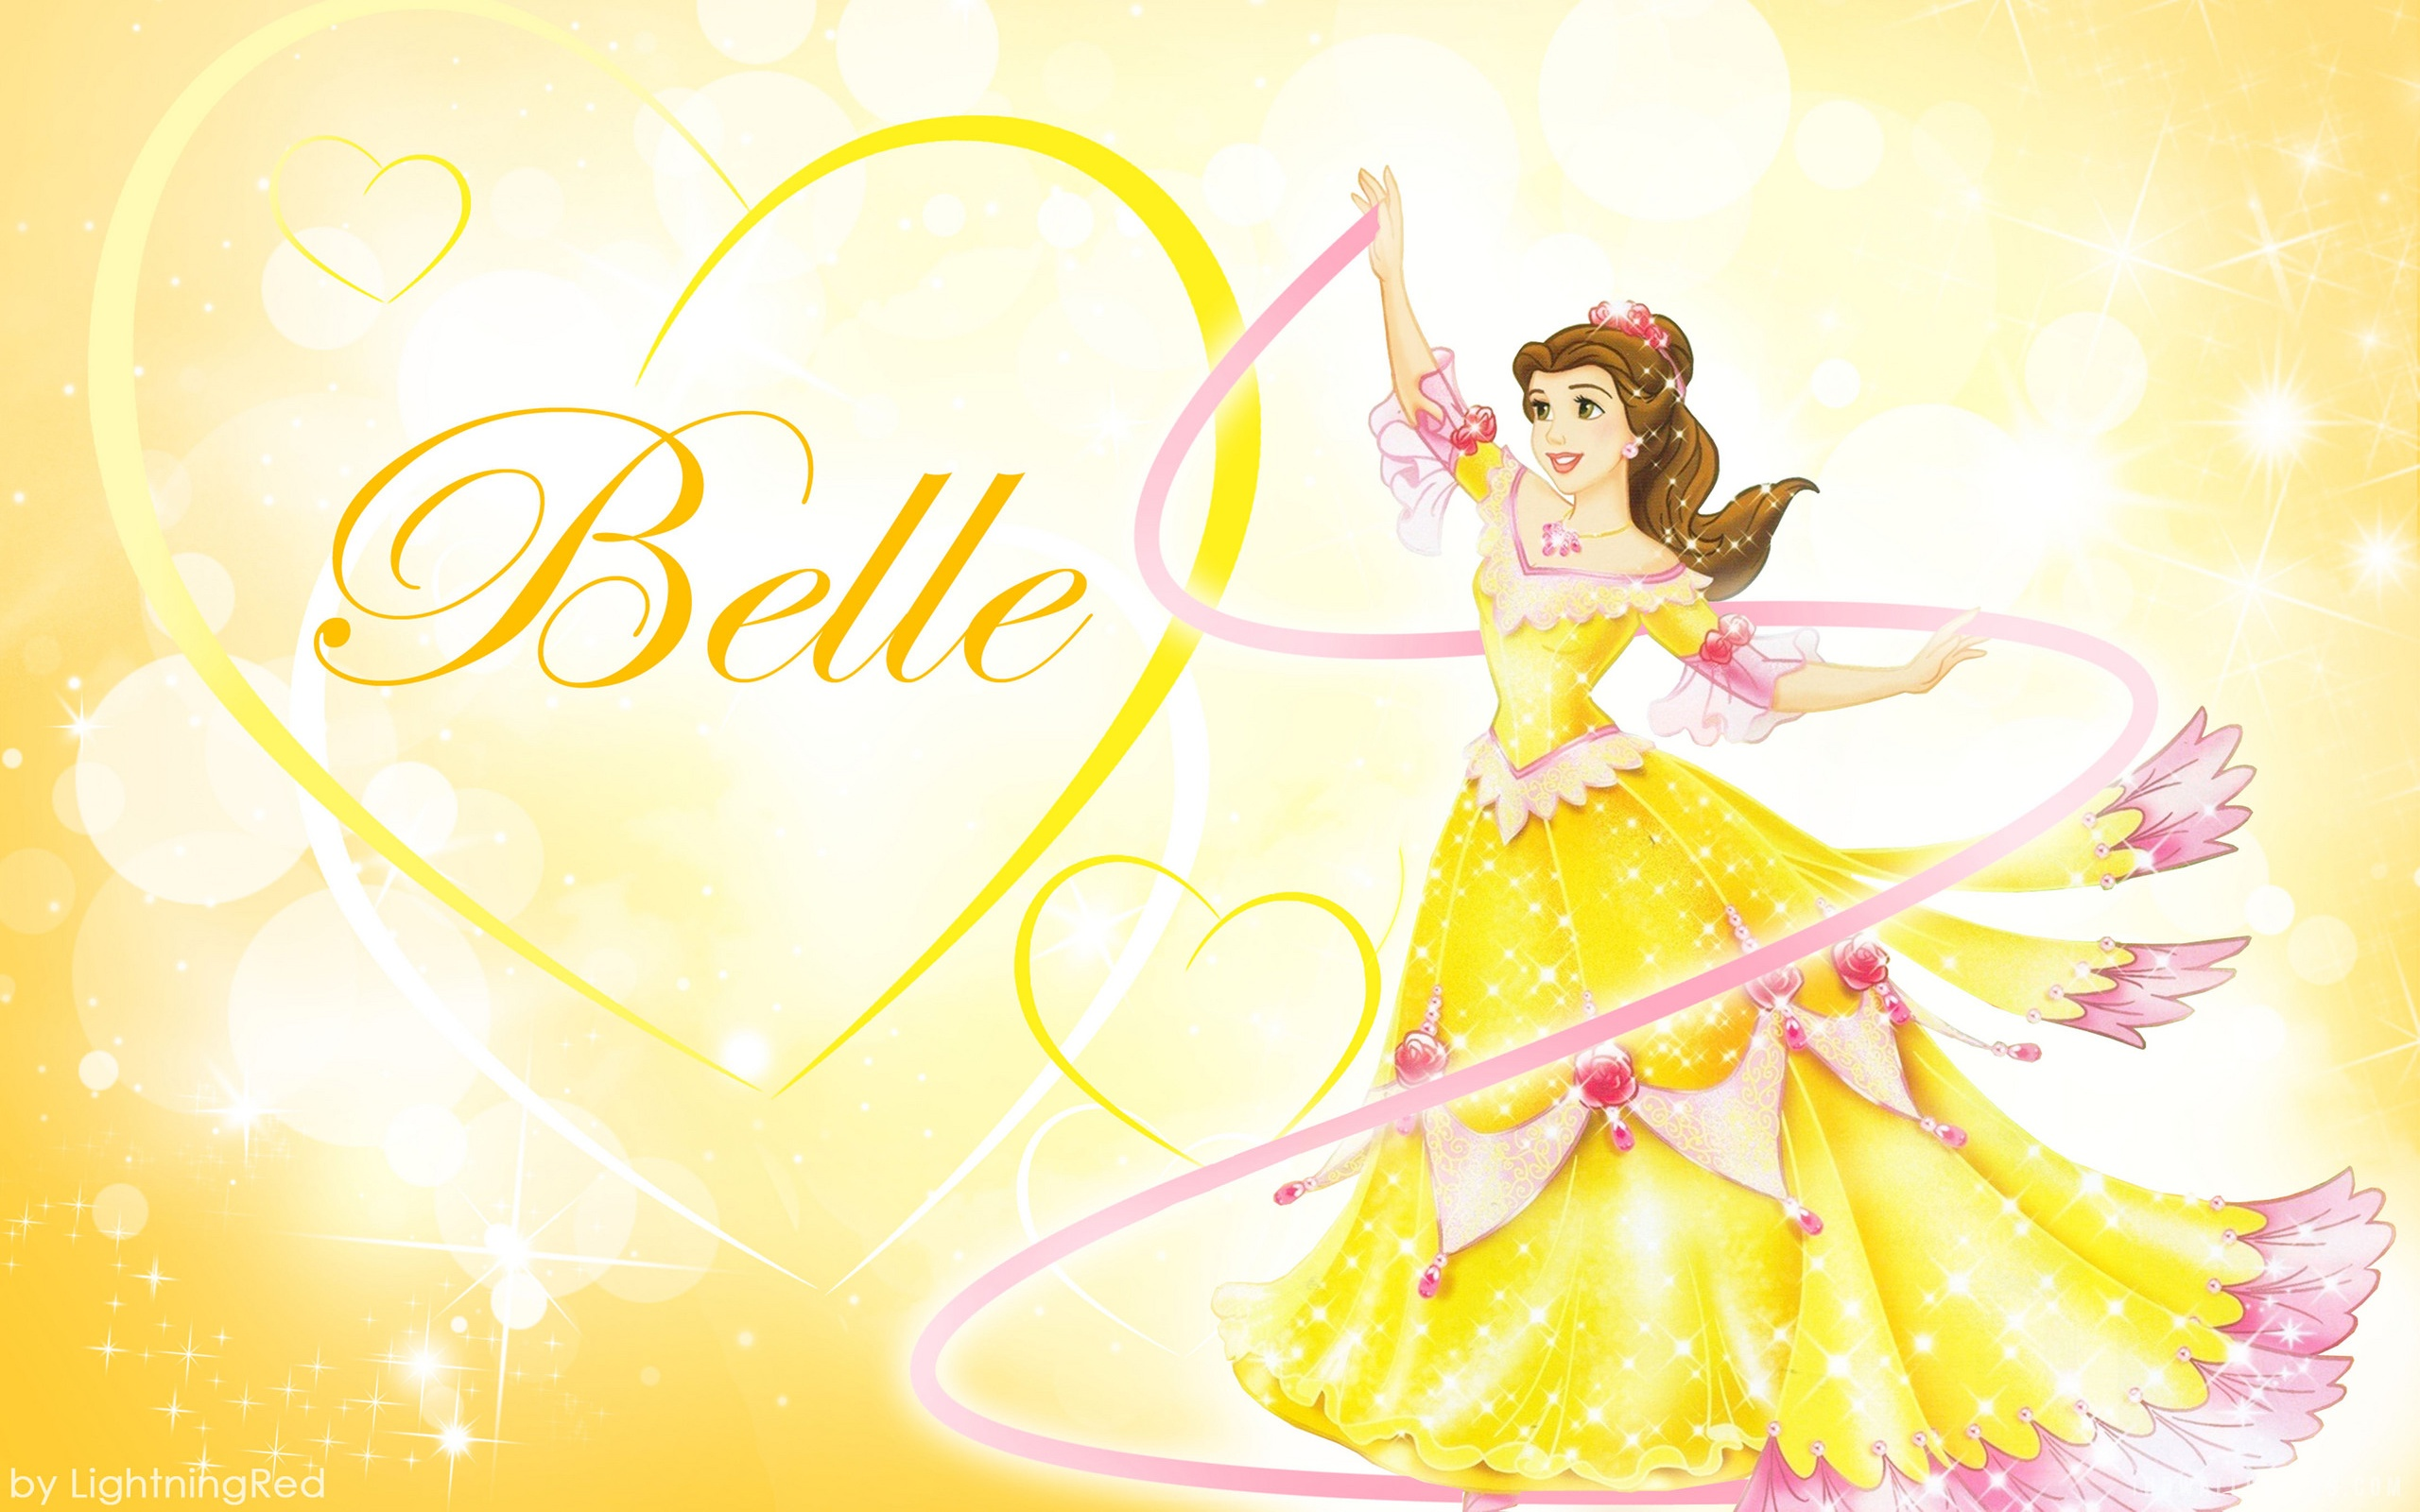 Disney Princess Belle HD Wallpaper   iHD Wallpapers 2560x1600